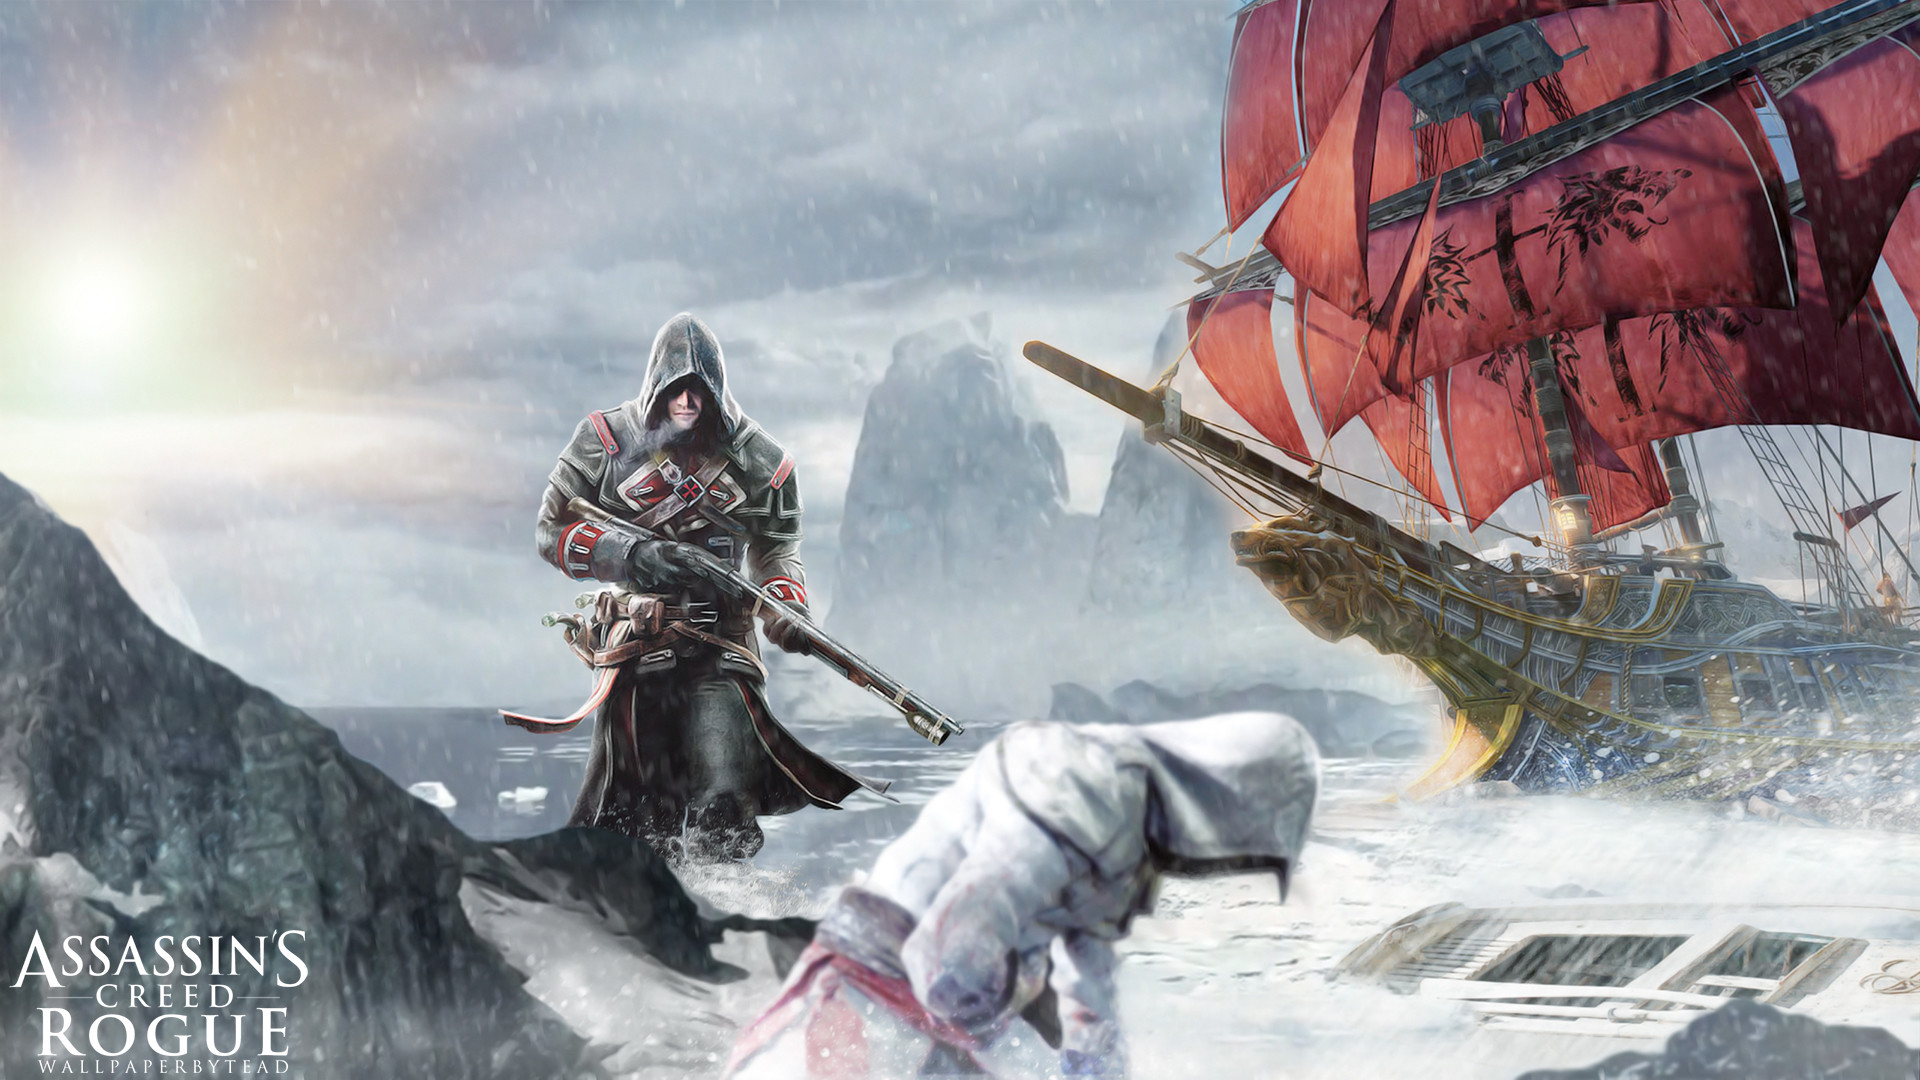 … Assassin's Creed Rogue wallpaper by teaD by santap555